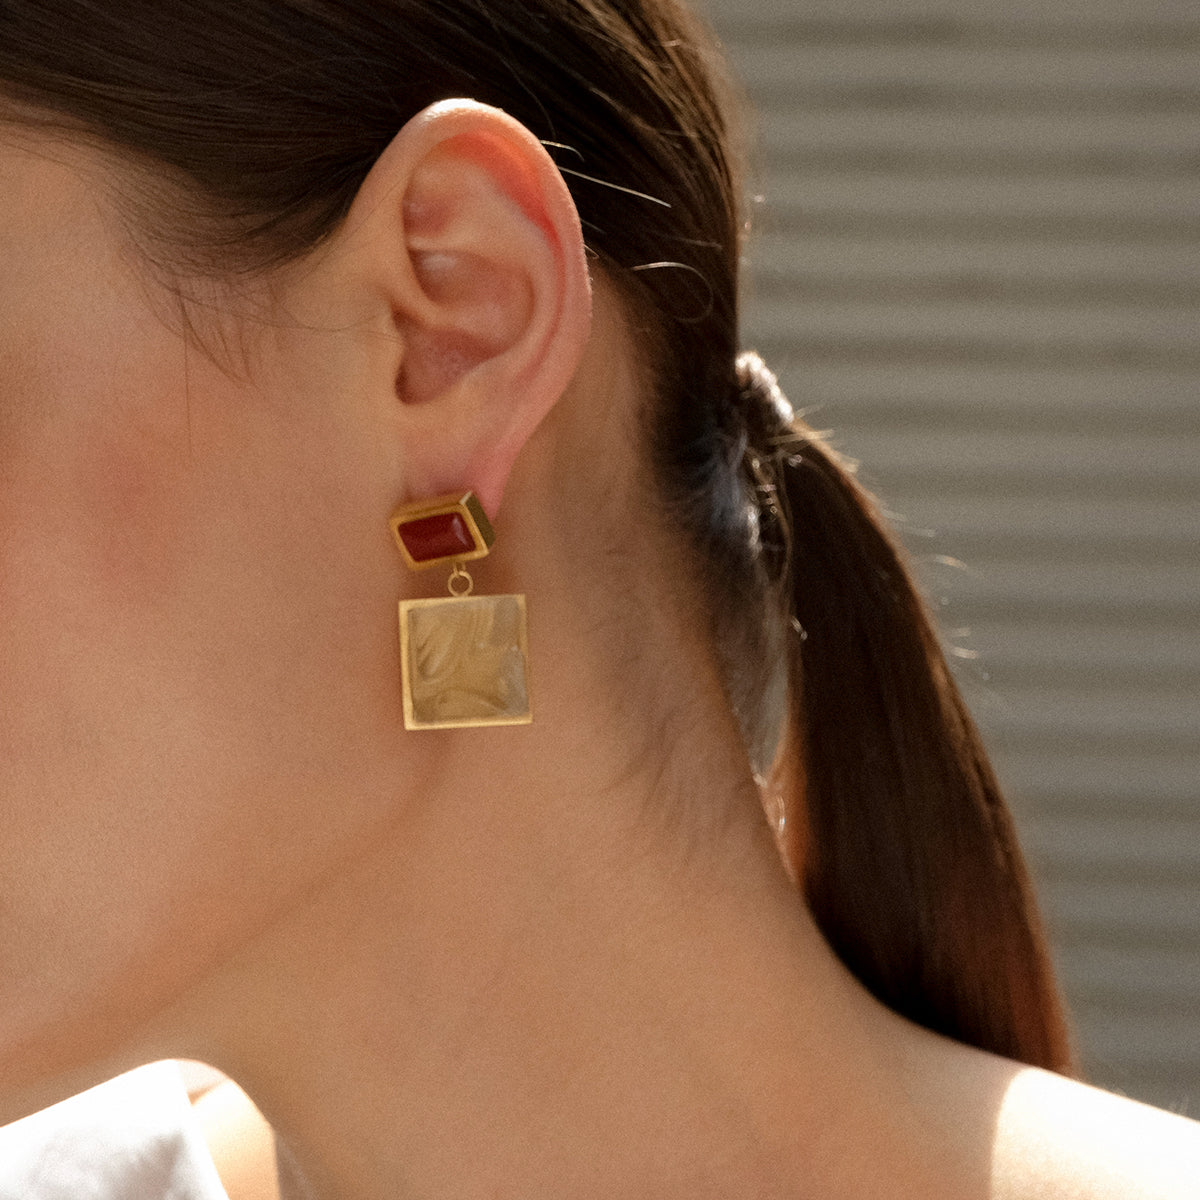 Cyprus Earrings by 1064 Studio | Teel Yes